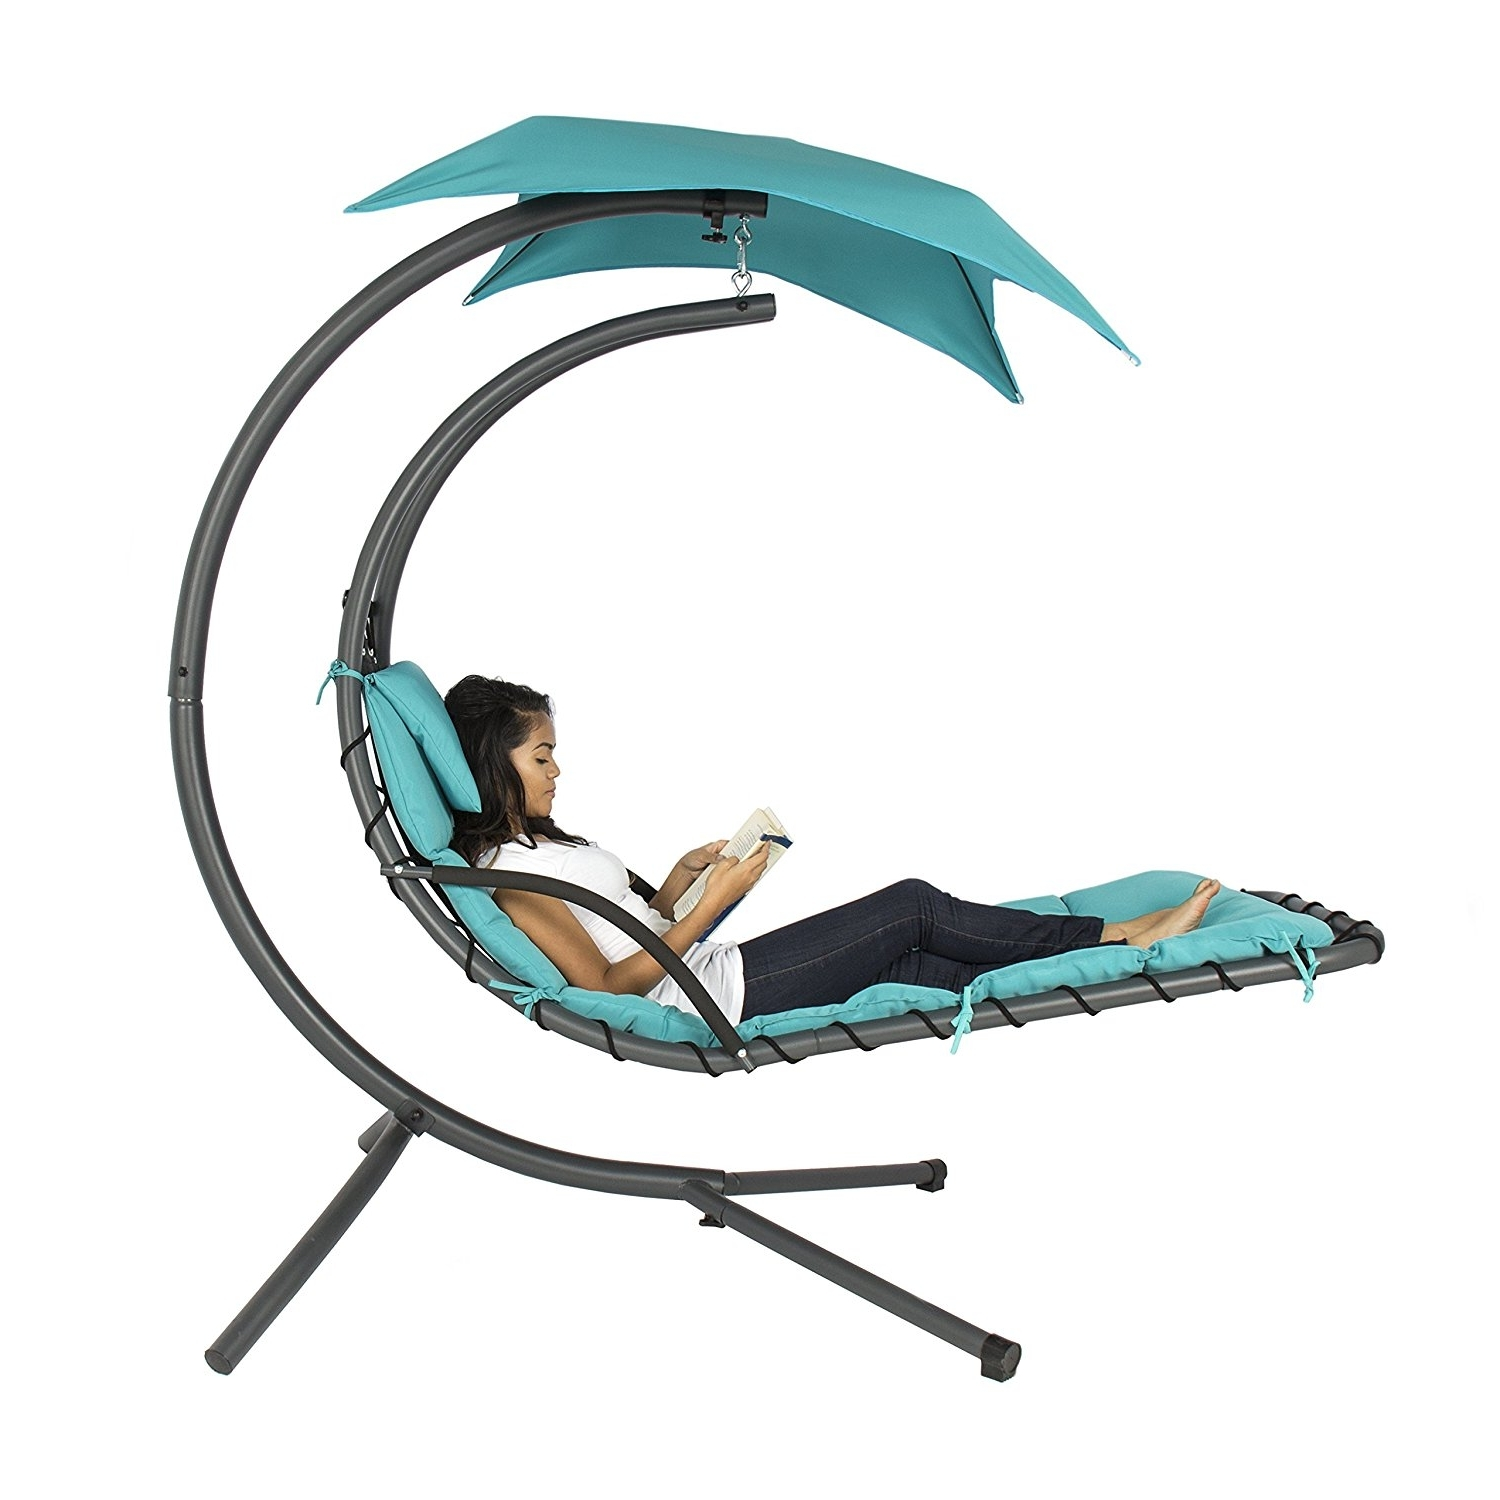 Most Popular Chaise Lounge Swing Chairs For Amazon: Best Choice Products Hanging Chaise Lounger Chair Arc (View 2 of 15)